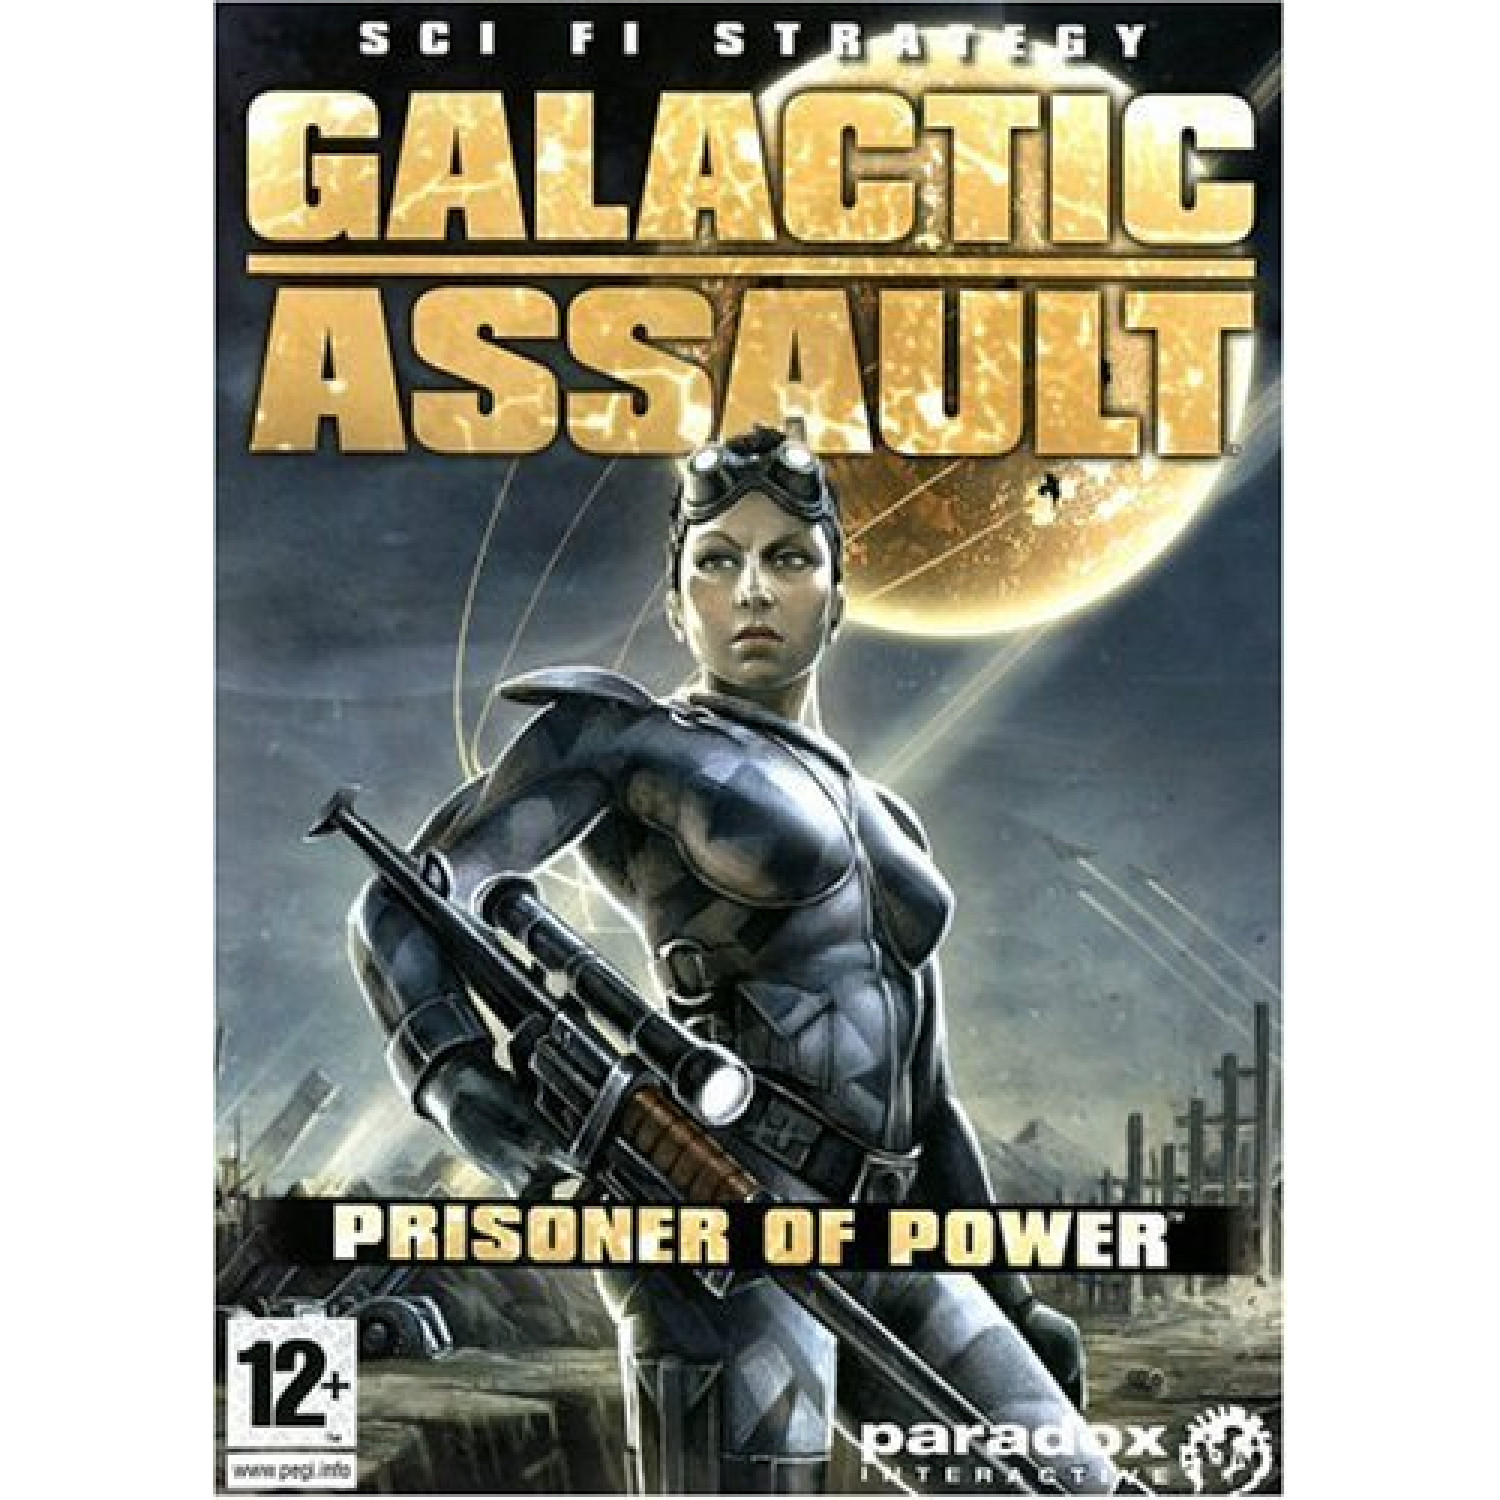 Gallactic Assault